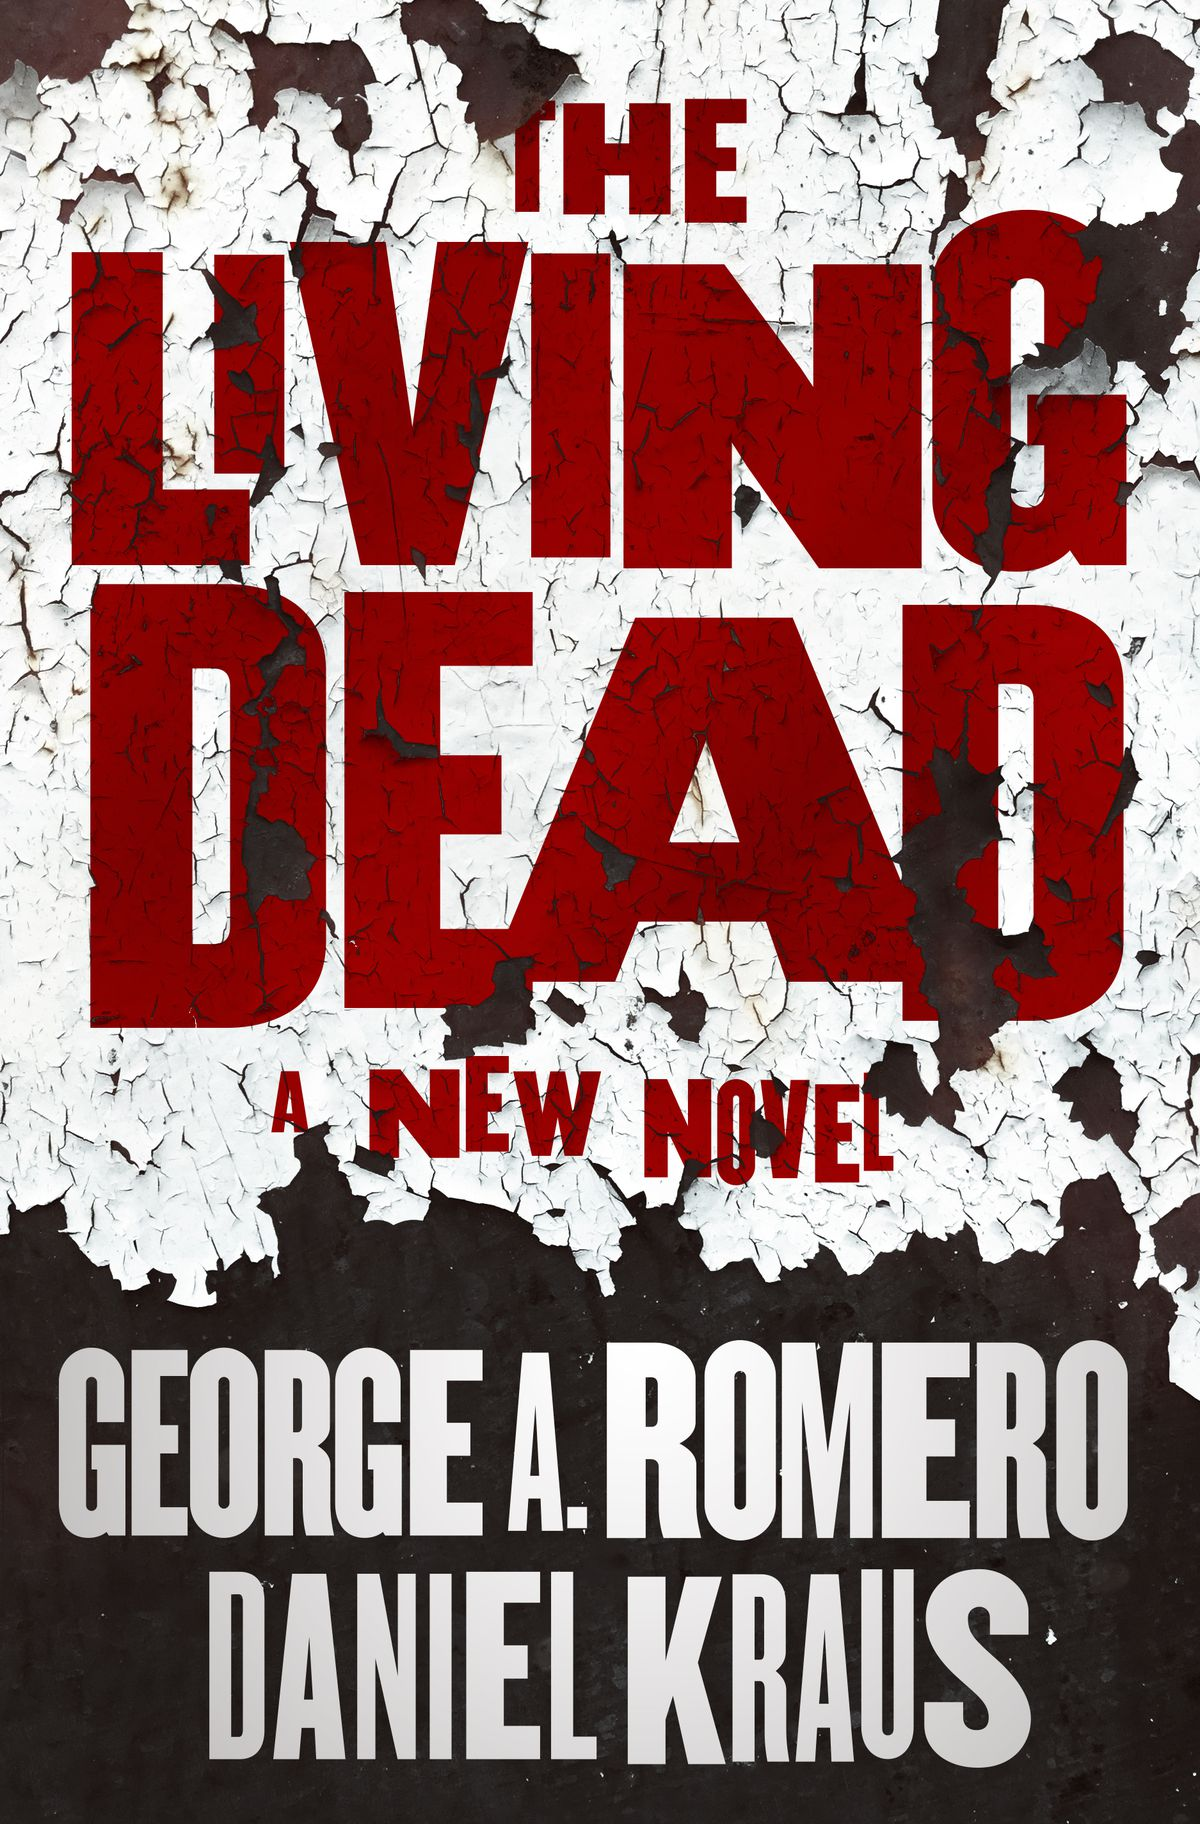 Cover image for George A. Romero and Daniel Kraus' novel The Living Dead